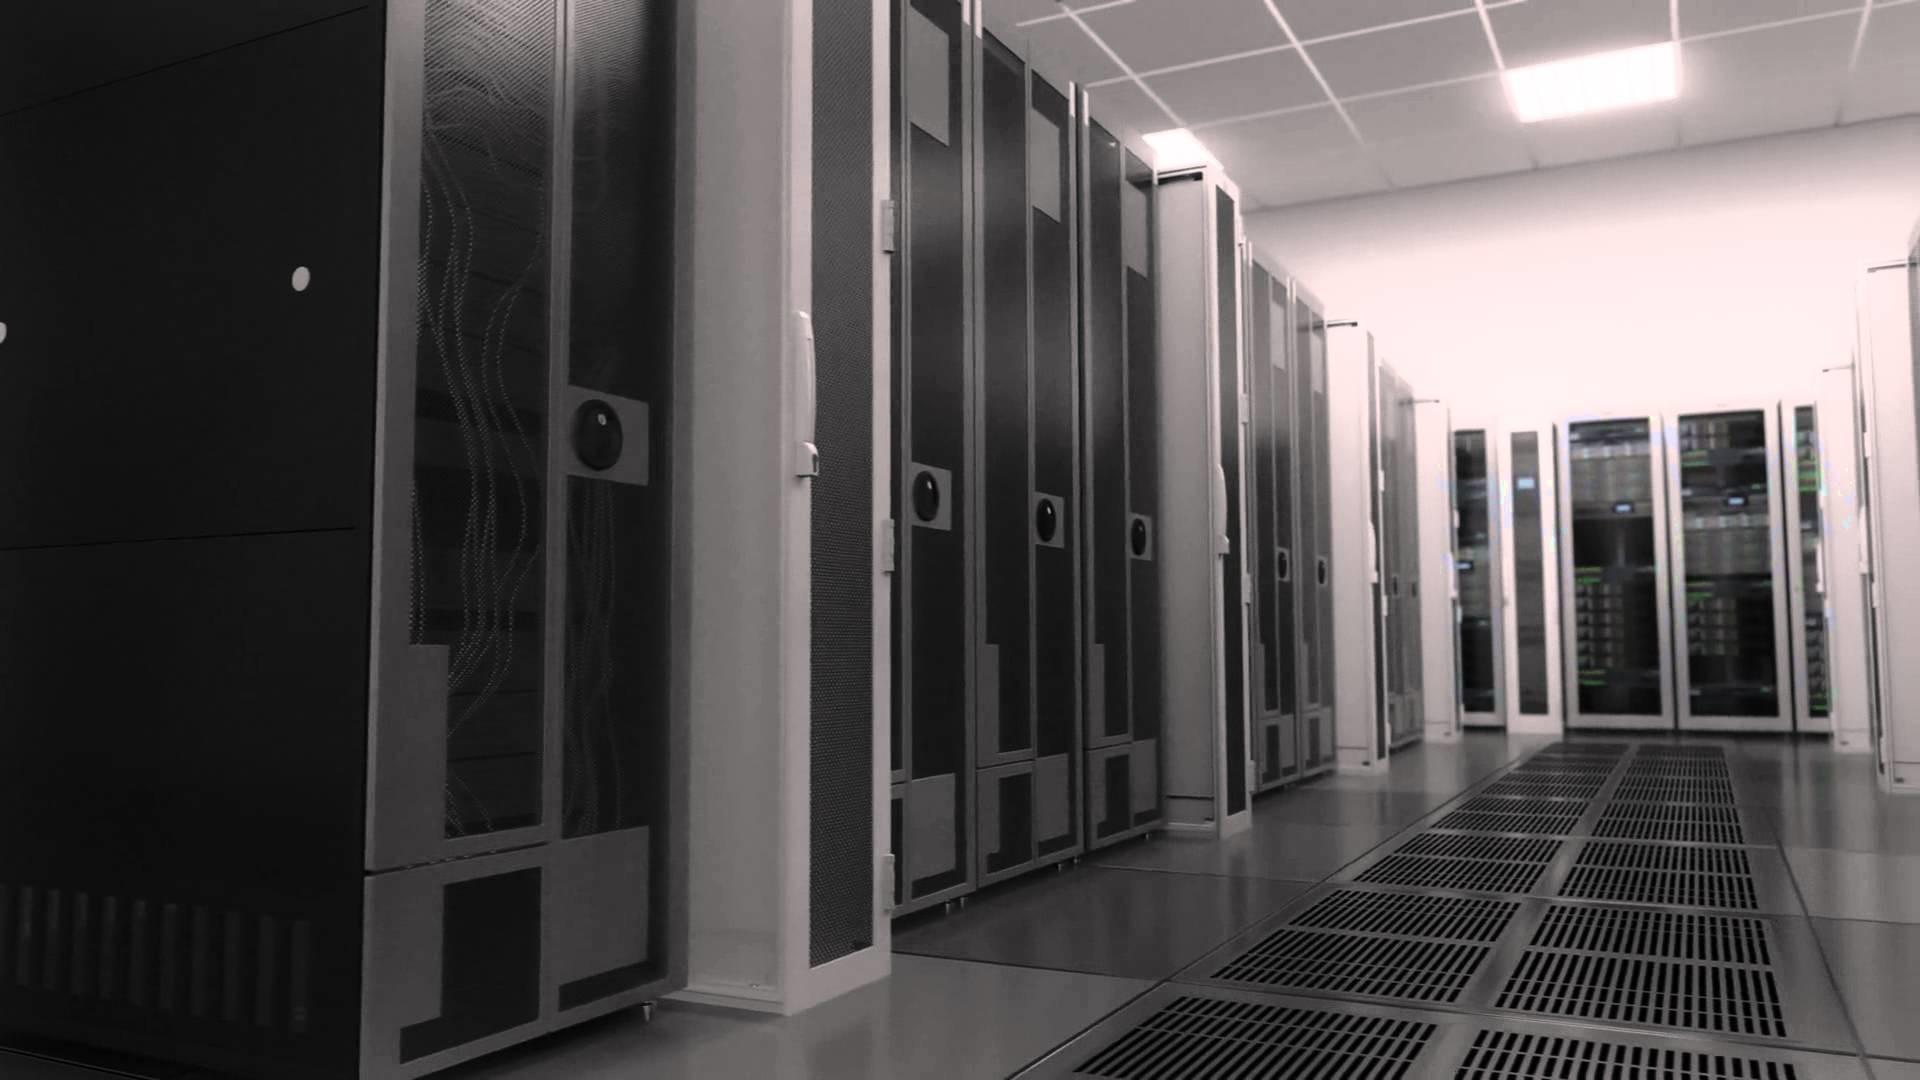 1920x1080 Web Server Room - Electronics Industry Background